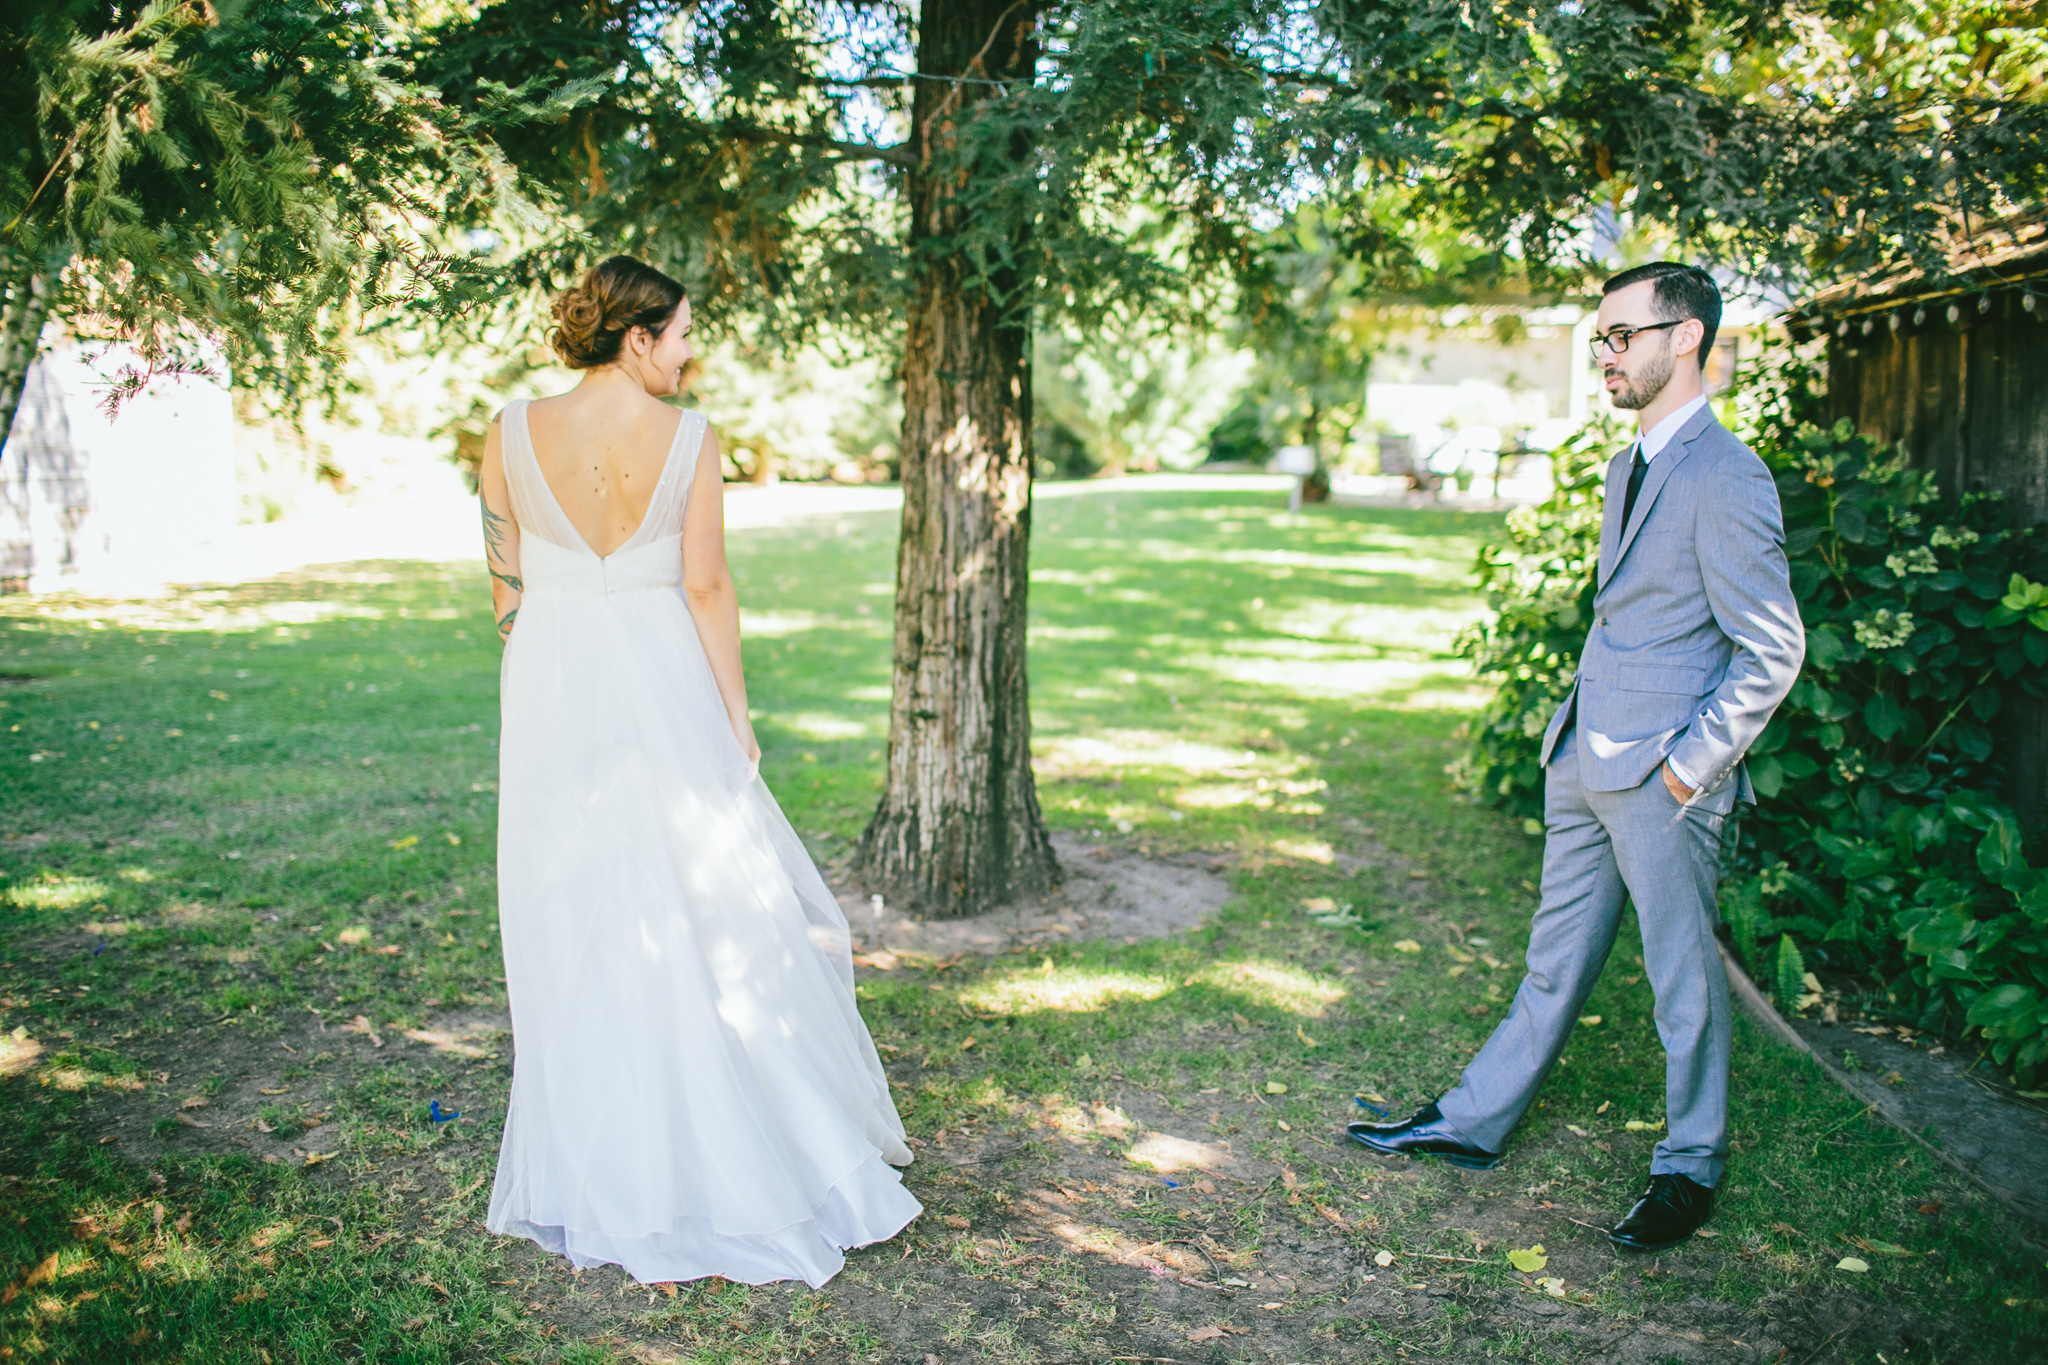 Amy+Nick-WEDDING_KellyBoitanoPhotography20151219_0038